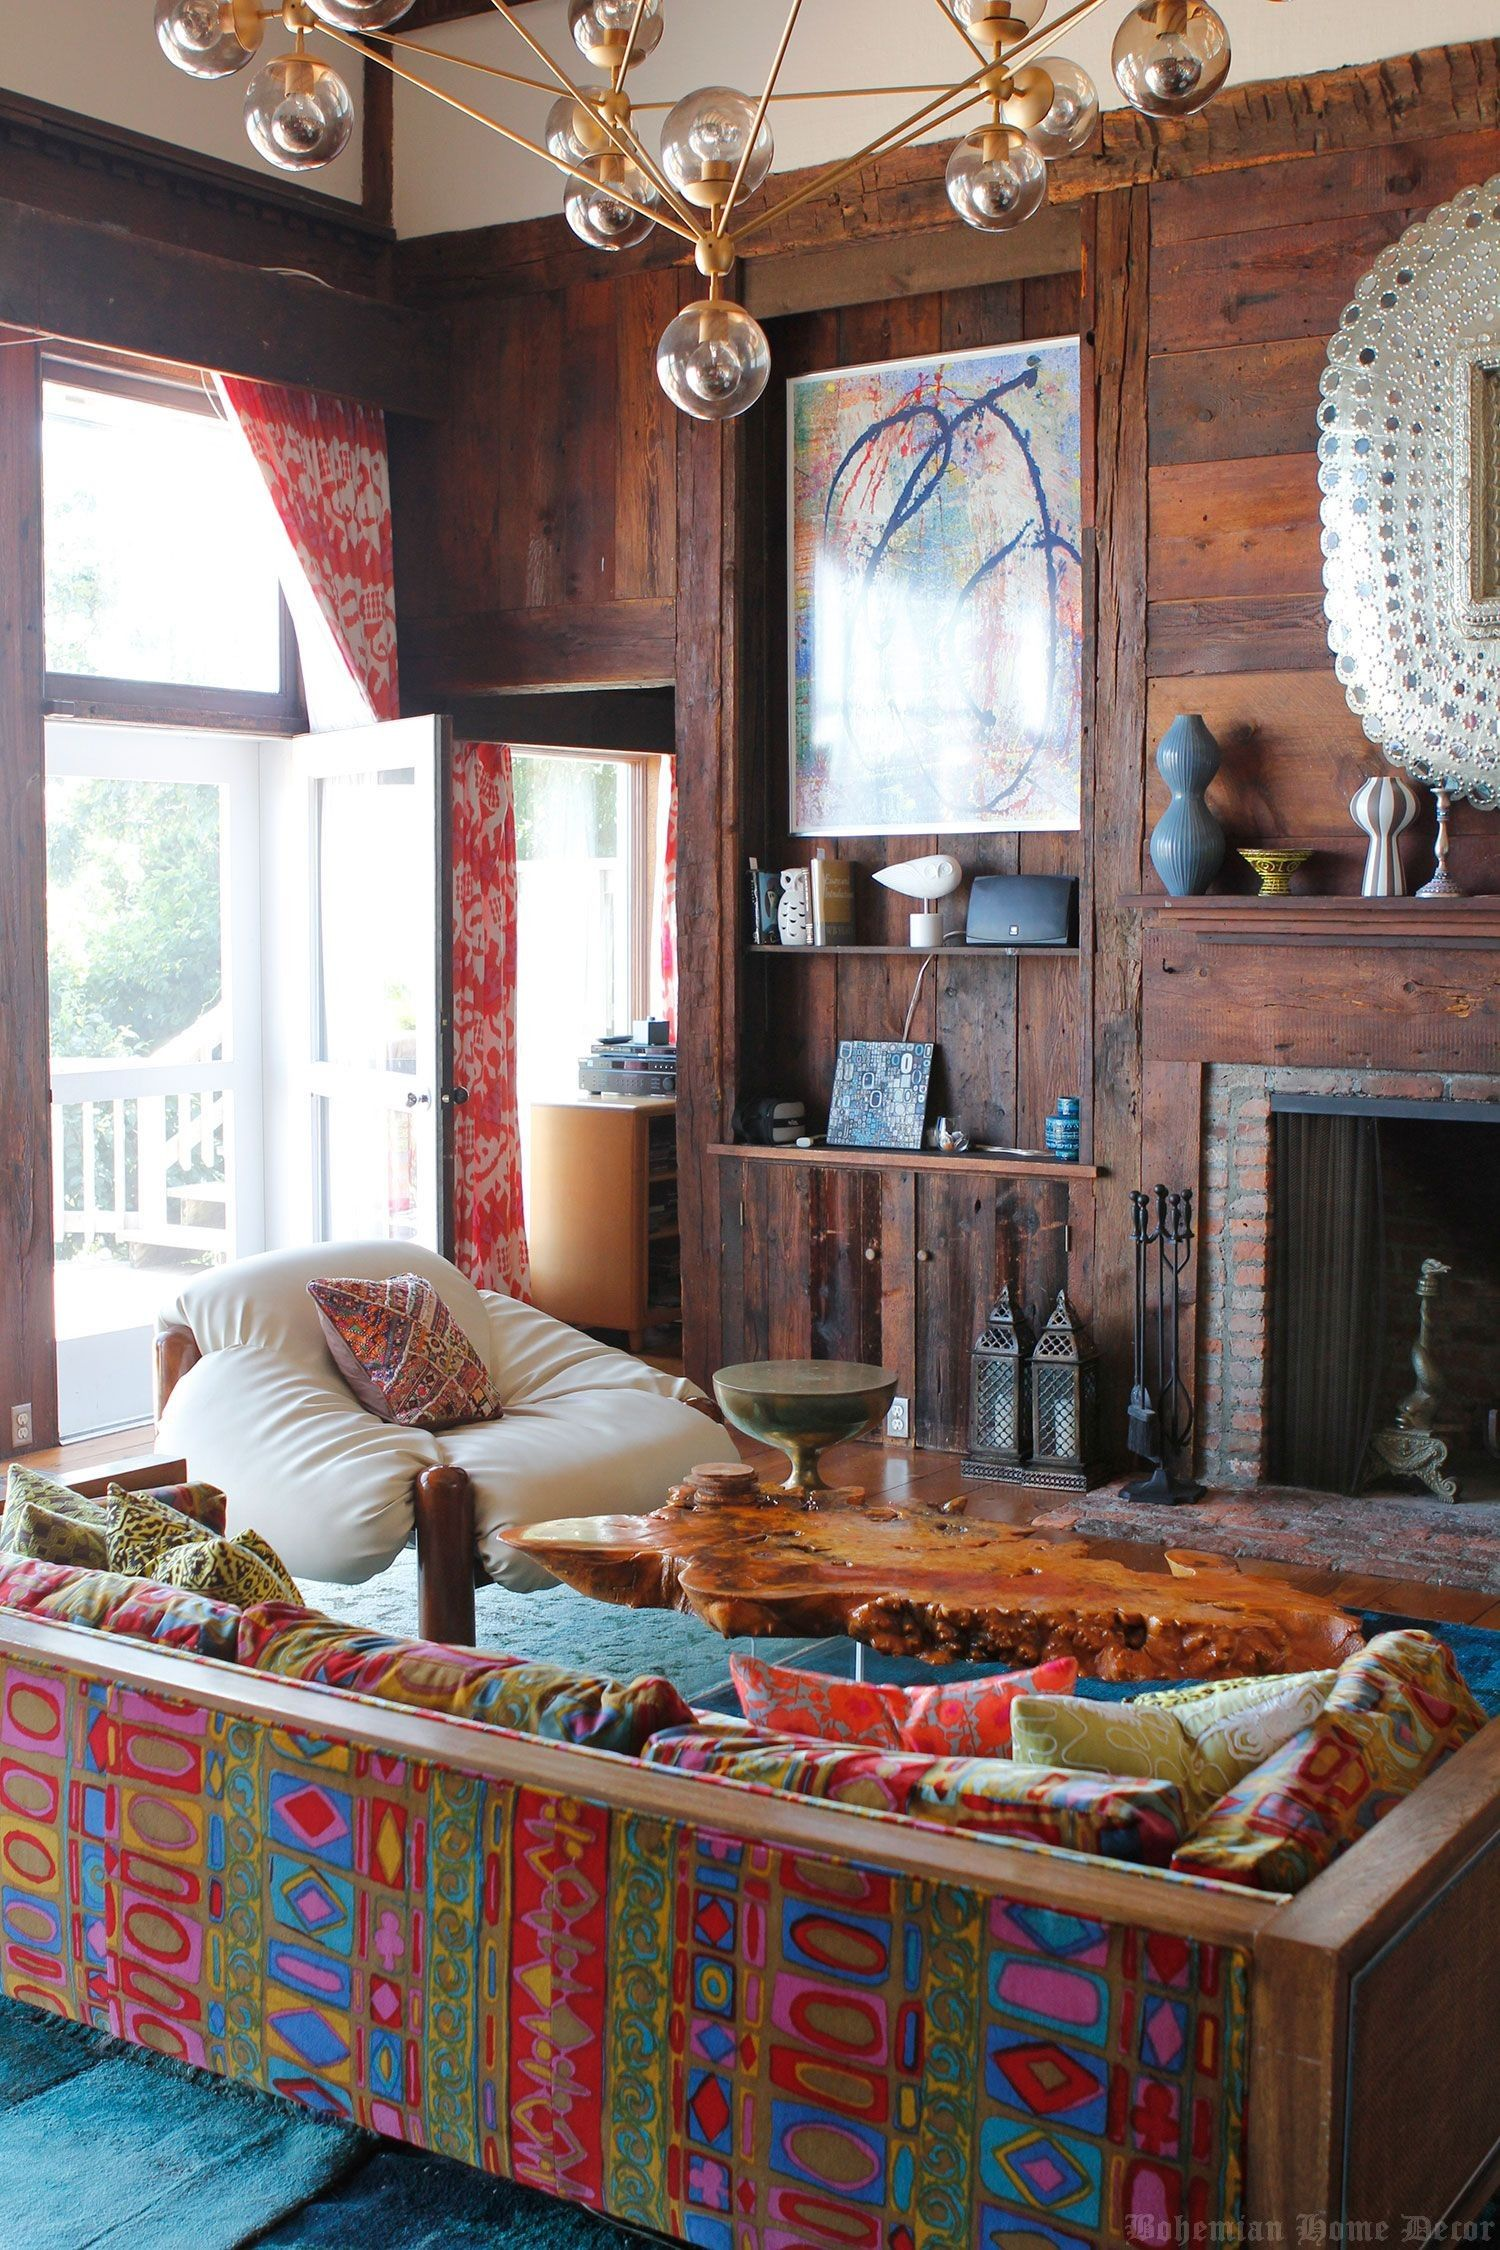 Free Advice On Bohemian Home Decor